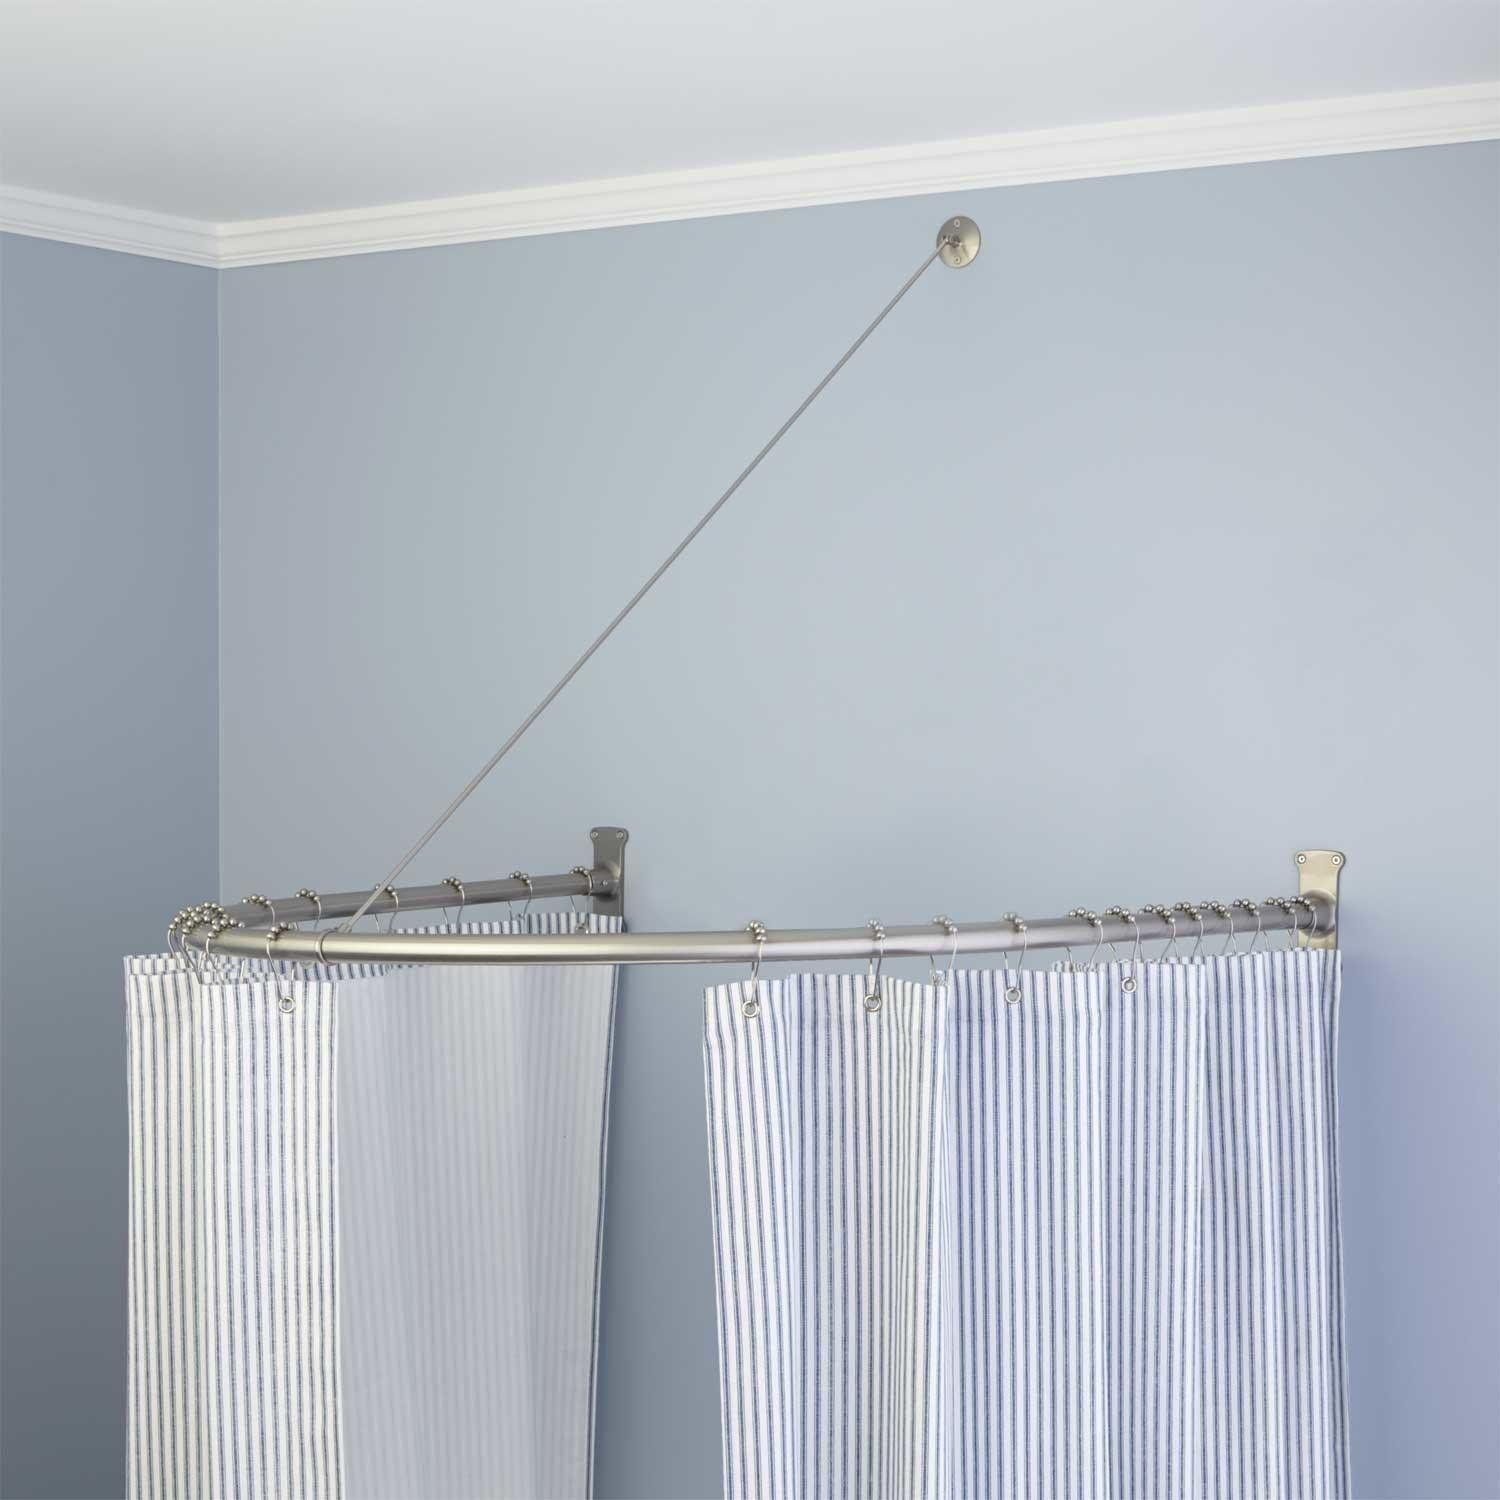 Semi round shower curtain rod legalizecrew pinterest